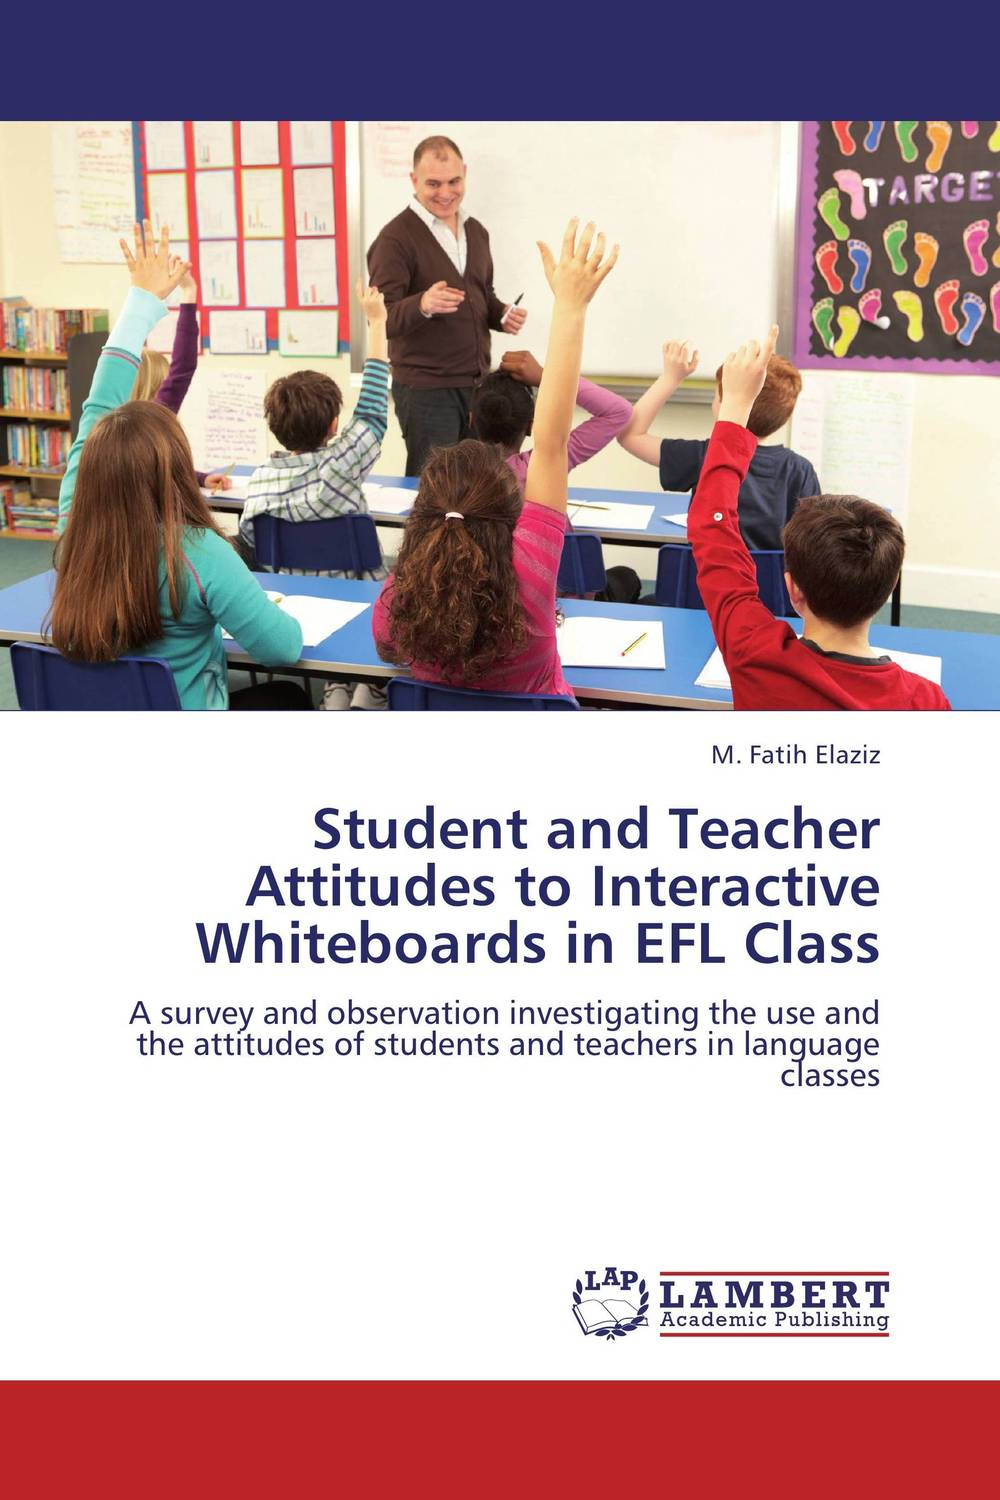 Student and Teacher Attitudes to Interactive Whiteboards in EFL Class english teachers' attitudes in acquiring grammatical competence